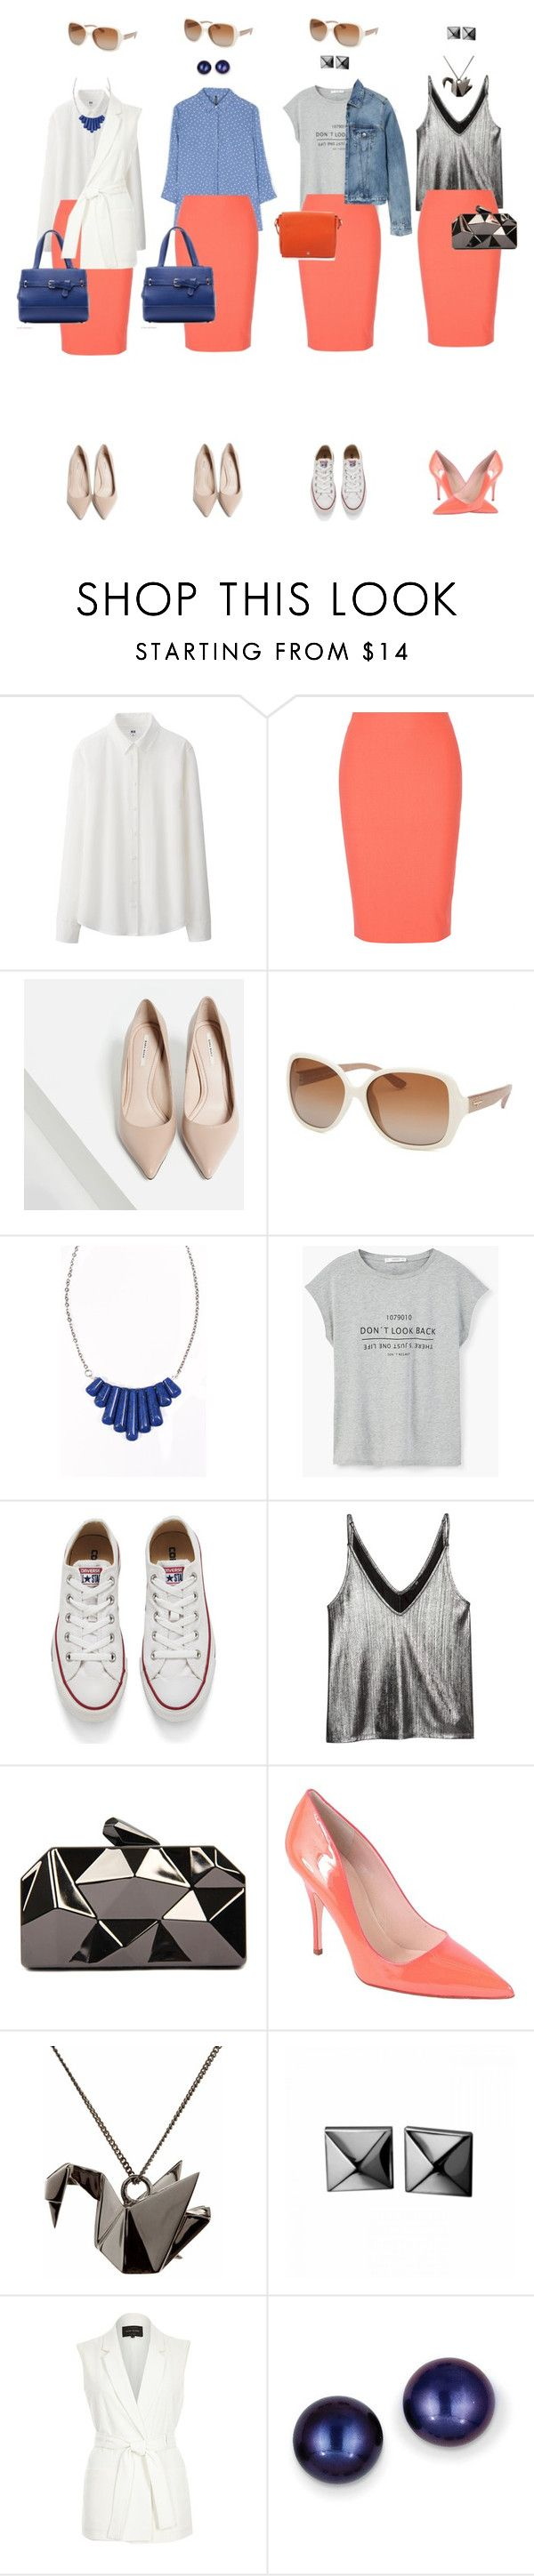 """""""Coral pencil skirt"""" by rara-nataliya ❤ liked on Polyvore featuring Uniqlo, Elizabeth and James, Zara, Salvatore Ferragamo, Heroldian Jewellery, MANGO, Converse, H&M, WithChic and Kate Spade"""